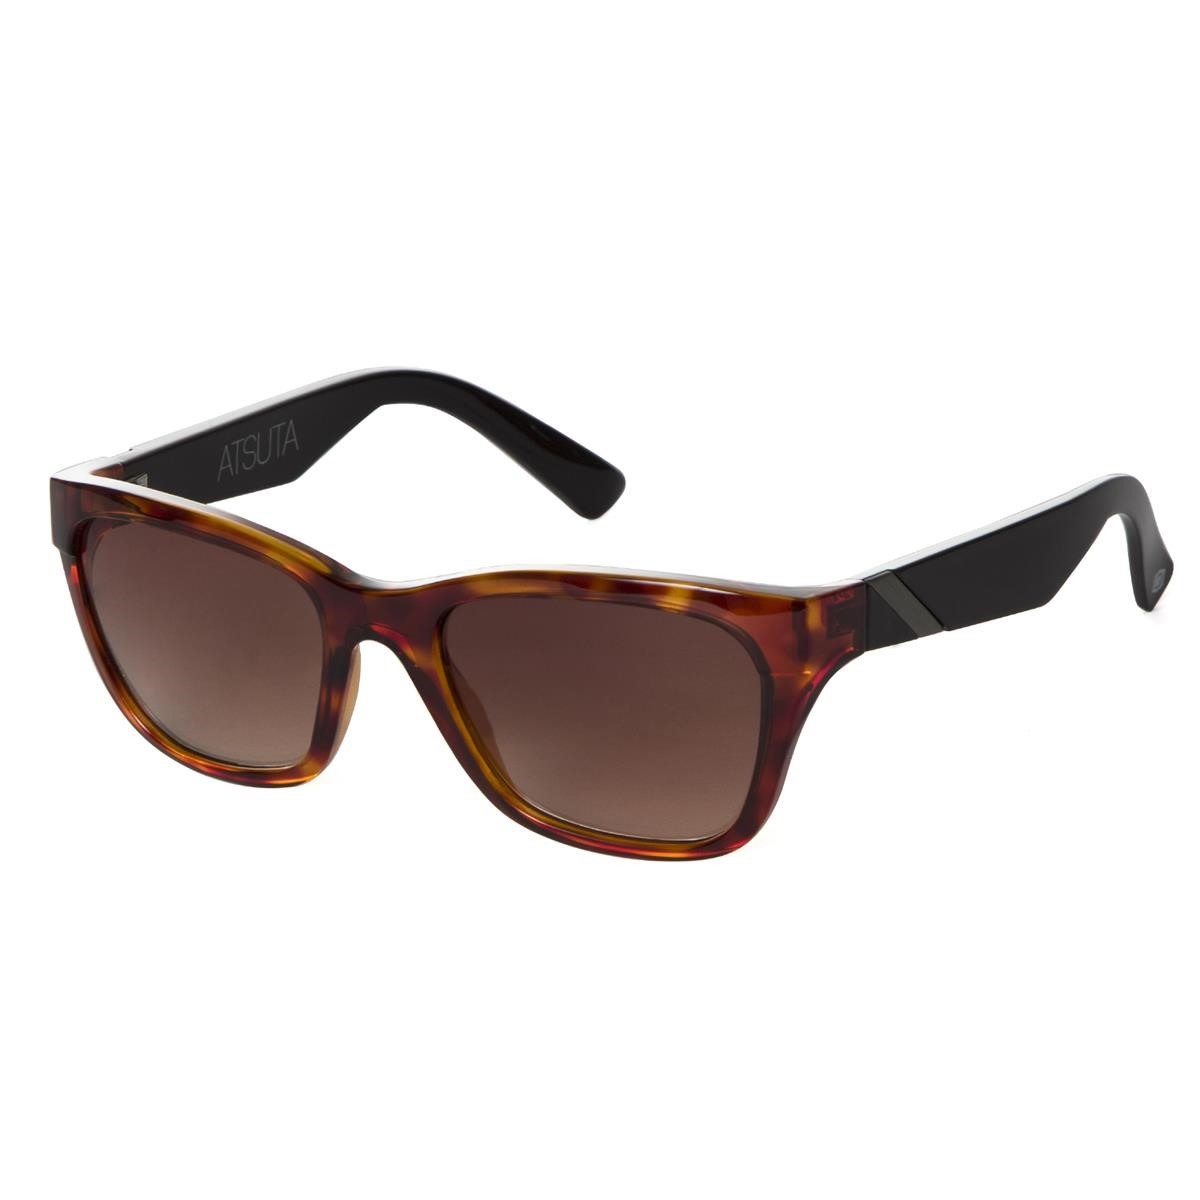 6a60b36c968 Best Sunglasses Brand For The Money